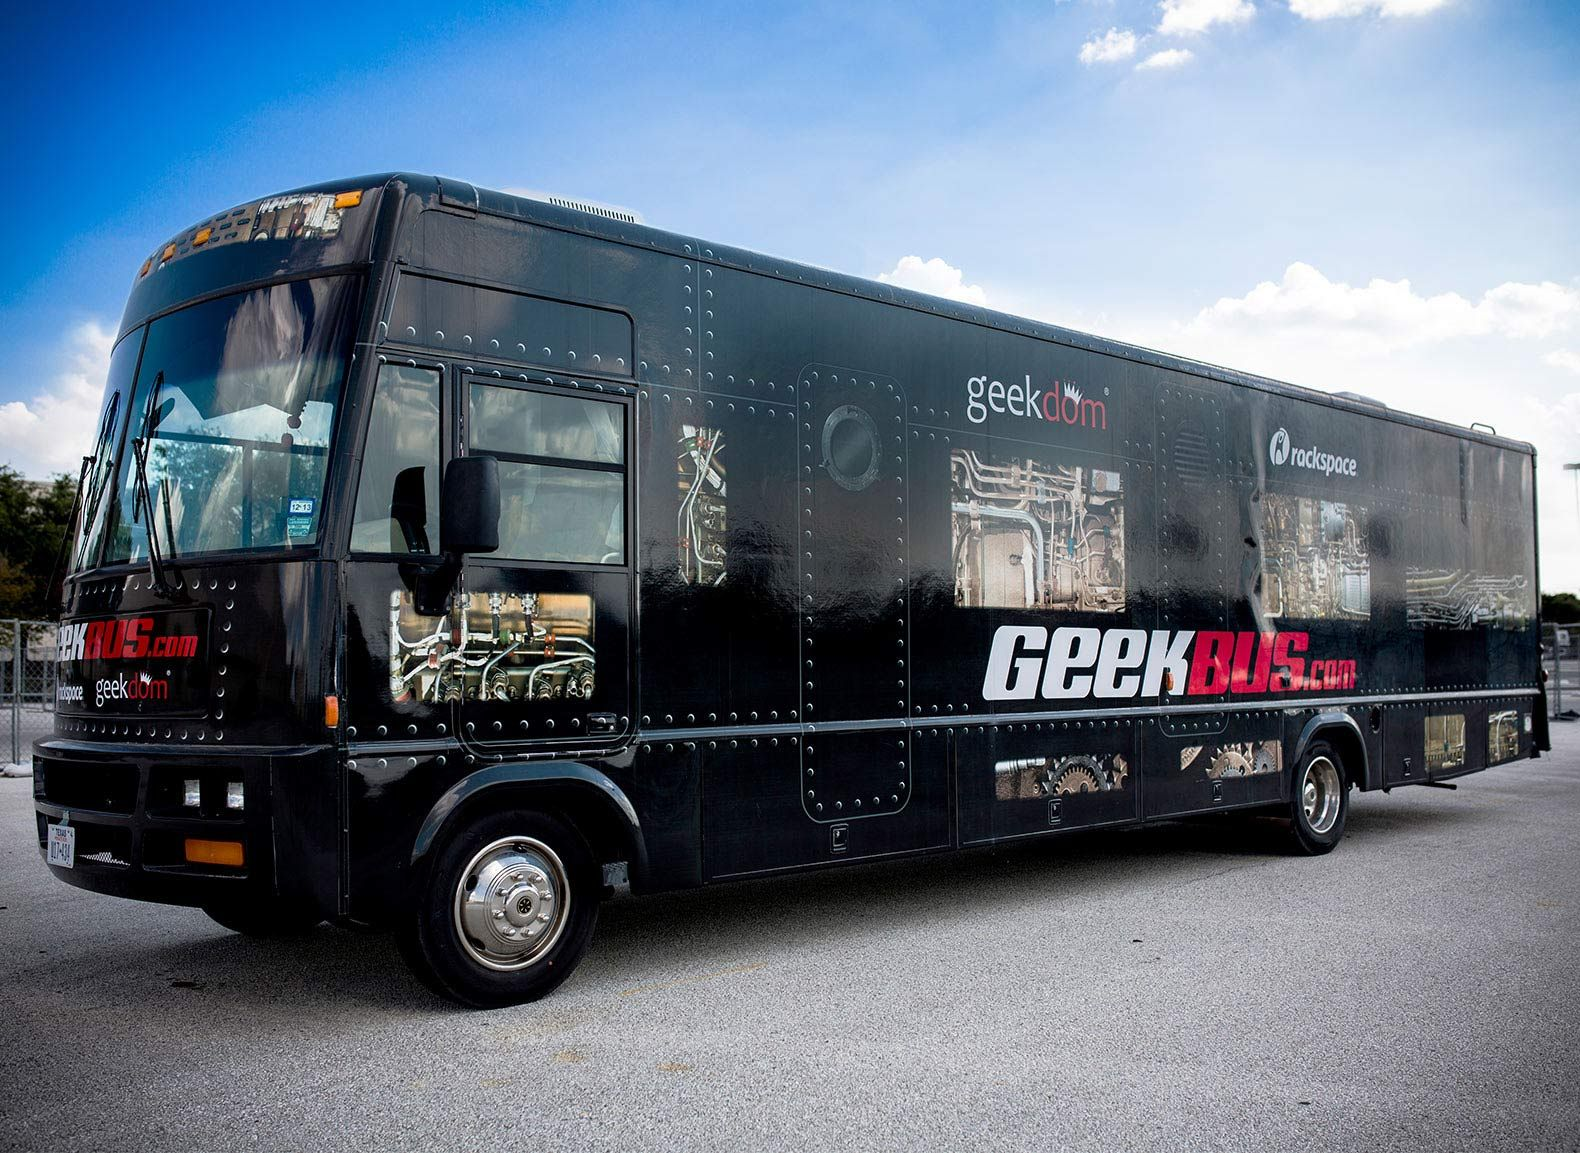 The Geekbus is a mobile science, technology, engineering, and math (STEM) lab in San Antonio, Texas, that gives underserved K–12 students the opportunity to learn about robotics, renewable energy, and more.